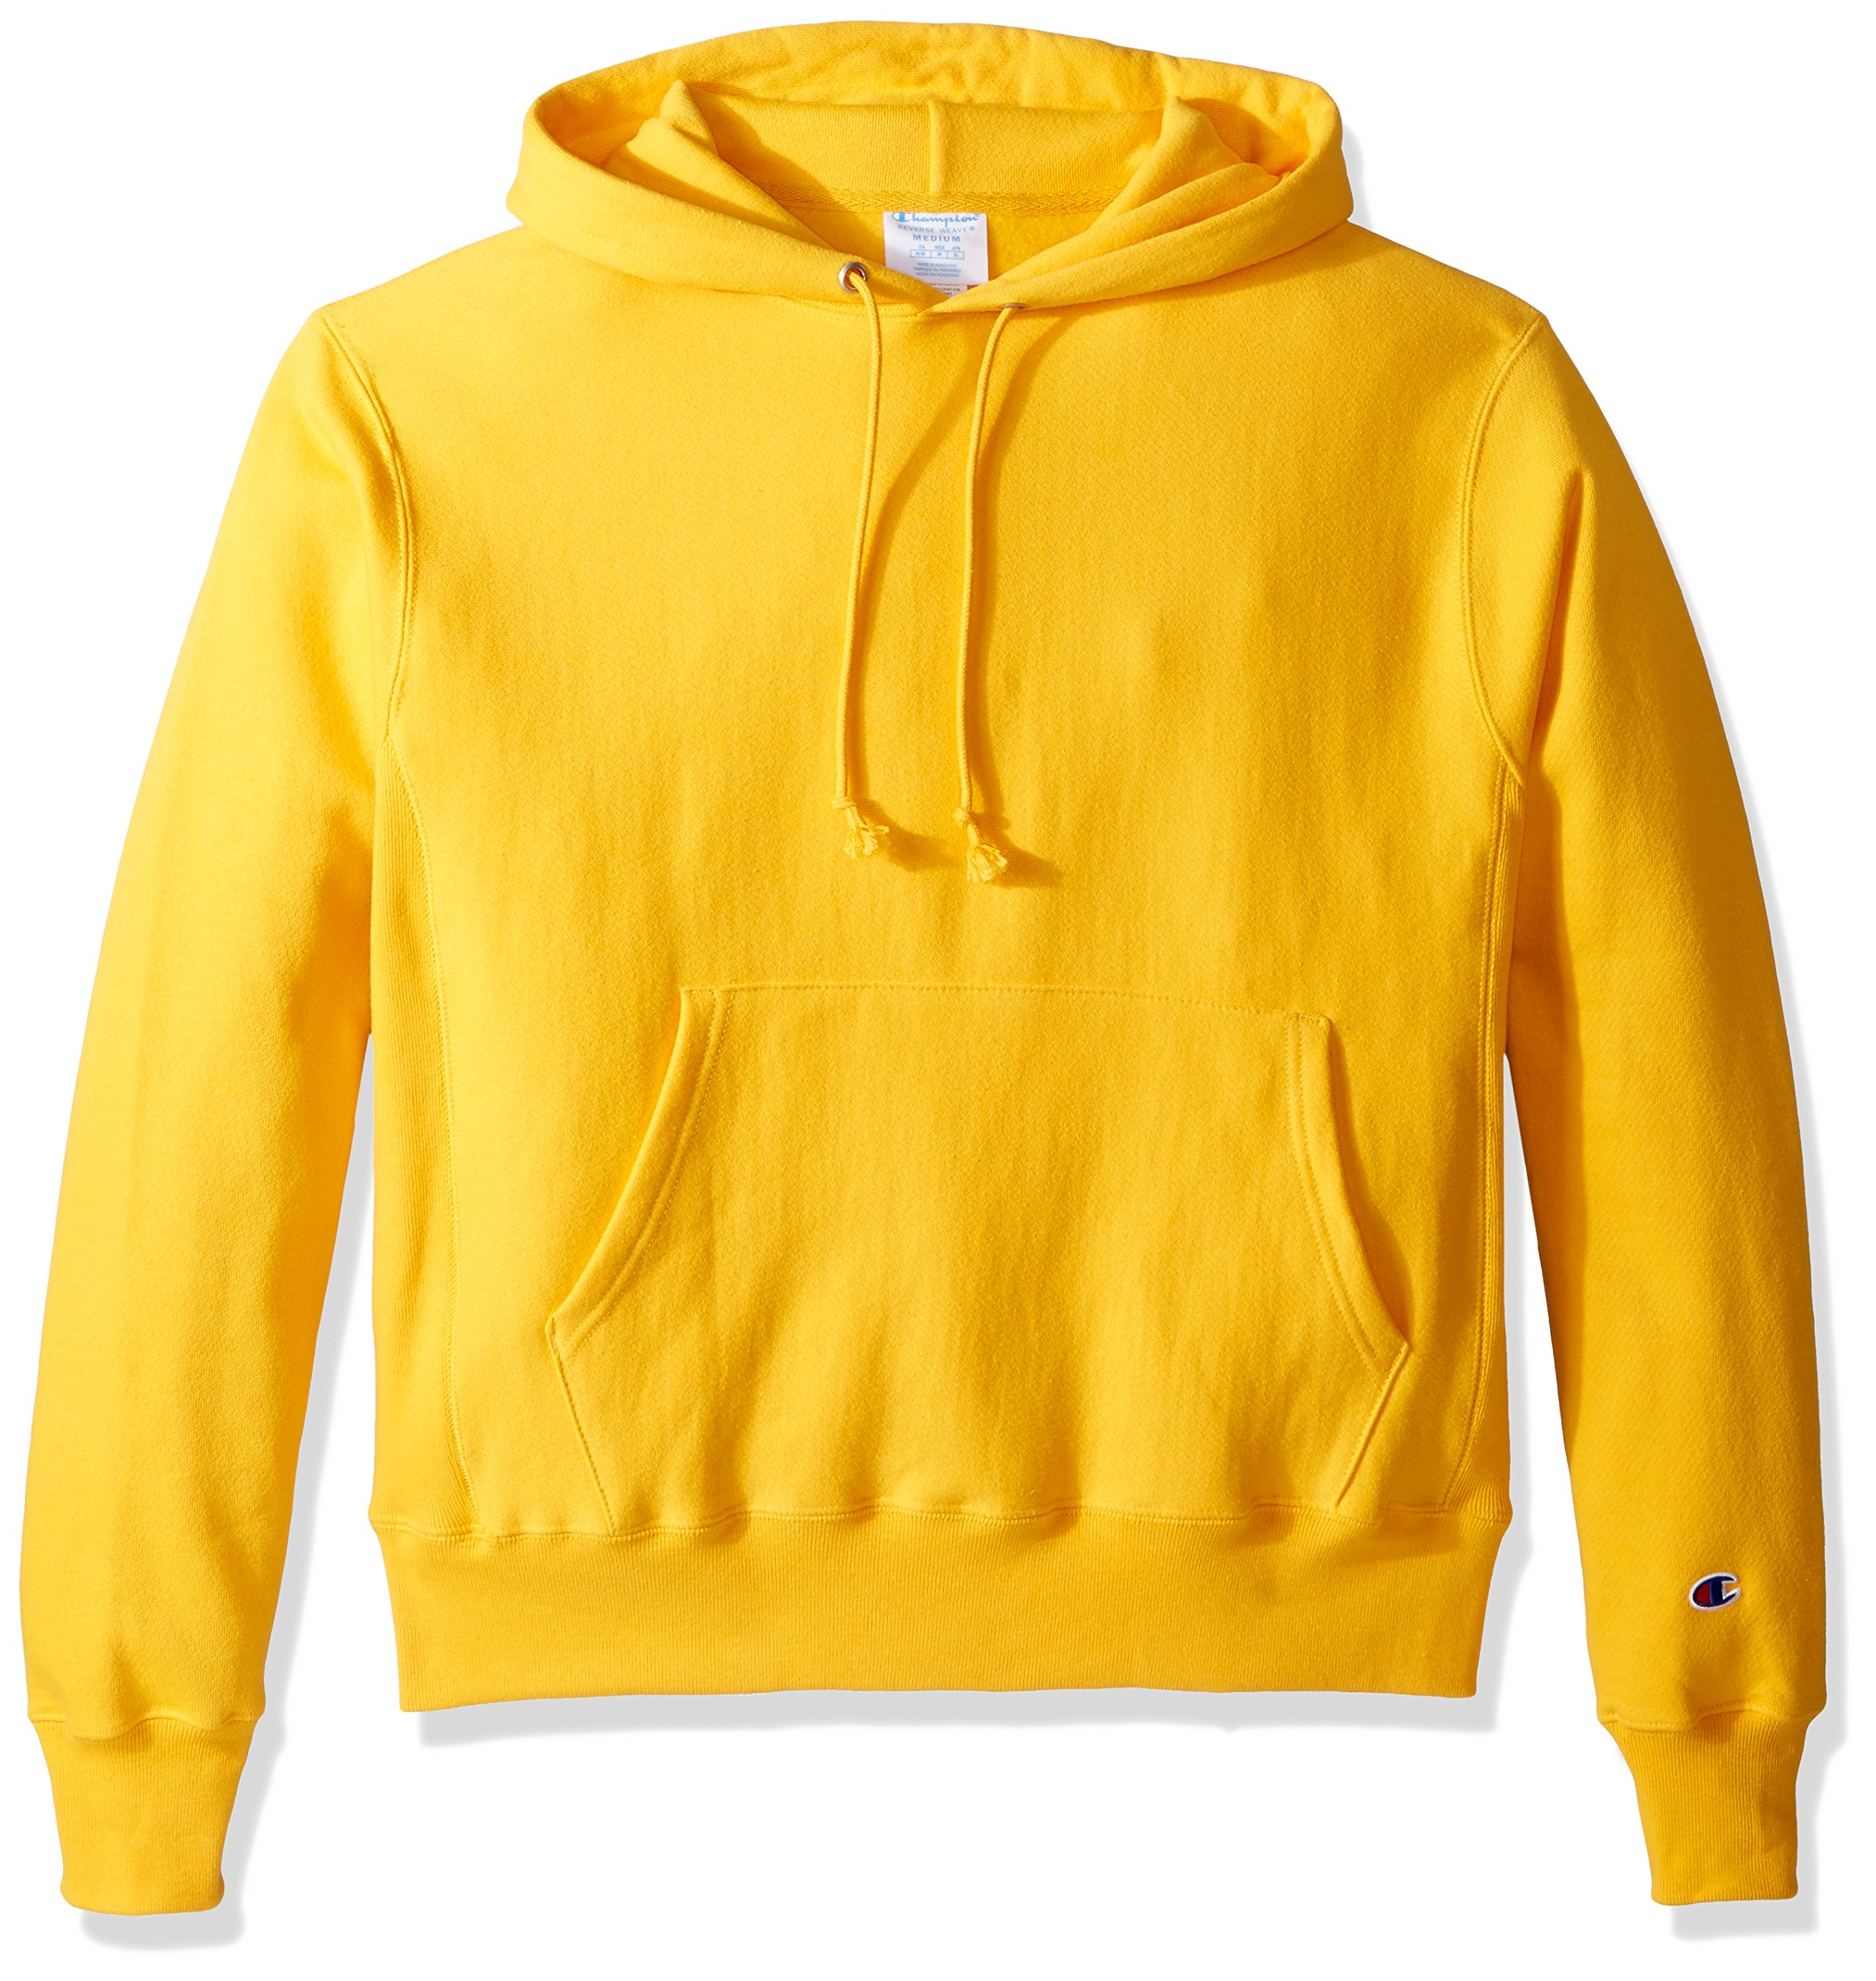 Champion LIFE Men's Reverse Weave Pullover Hoodie, Team Gold, 3X Large by Champion LIFE